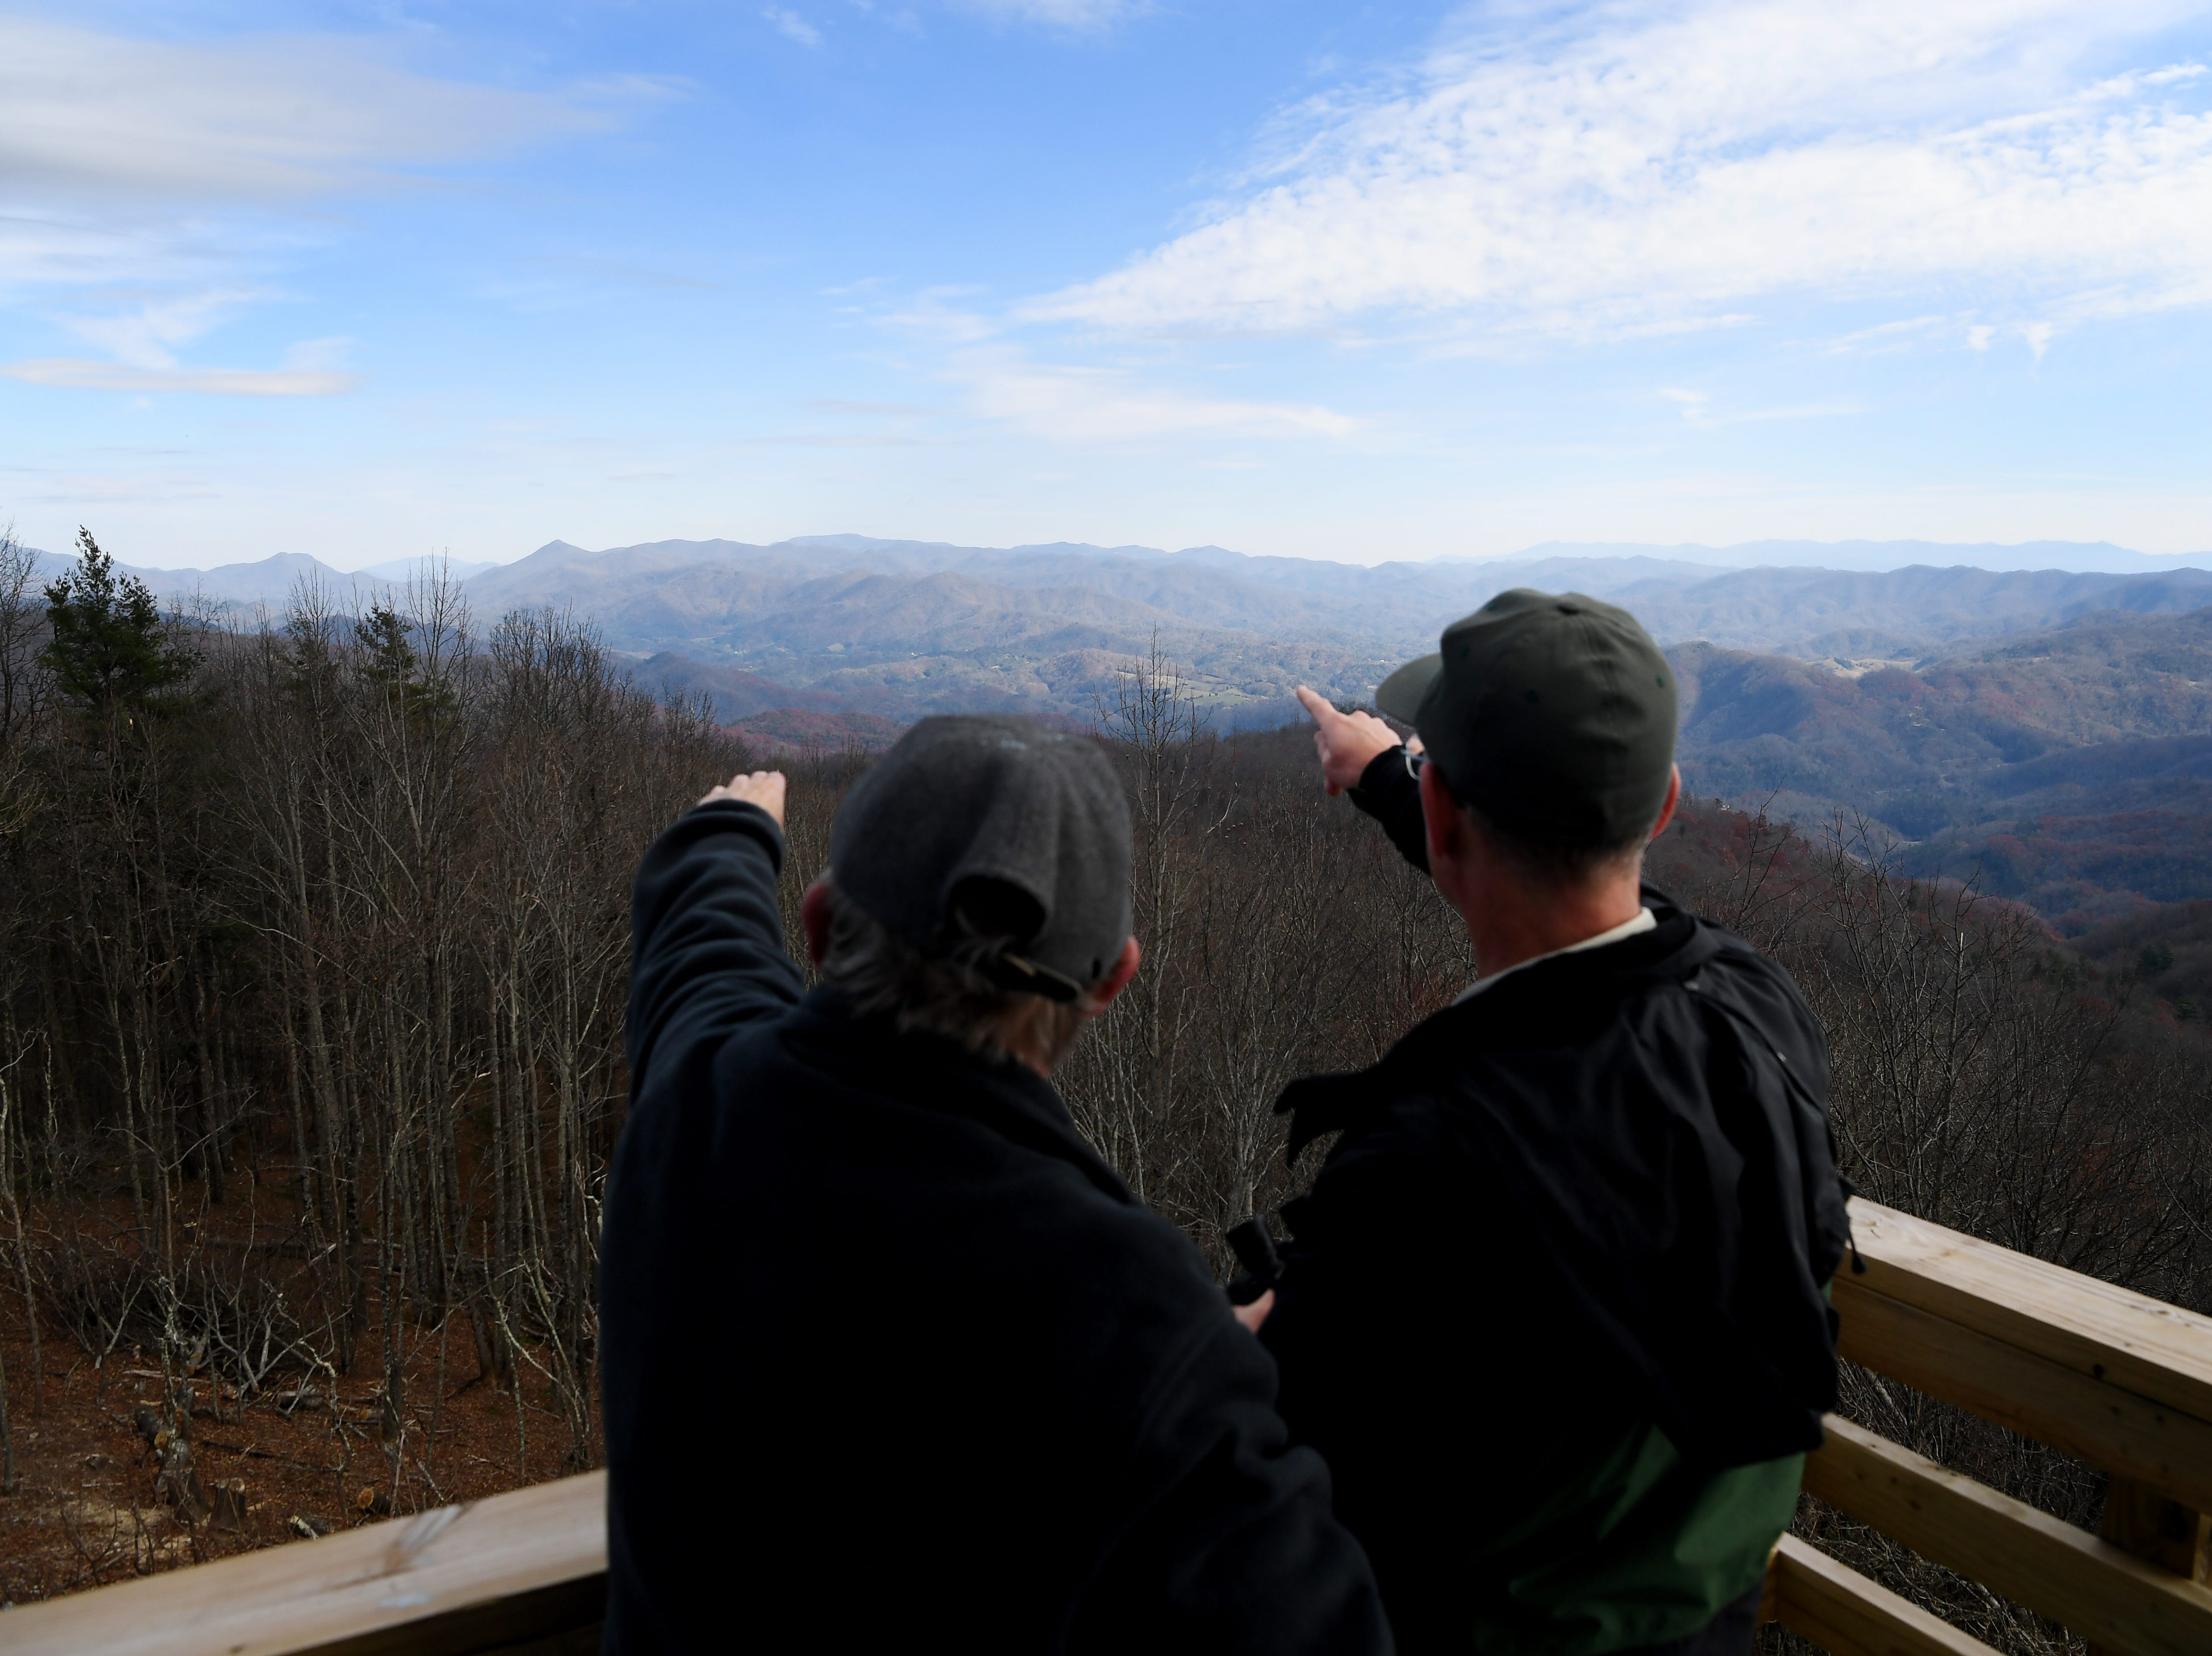 Rob Kelly, left, of Hot Springs, spots mountain peaks along the horizon with Richard Thornburgh, Appalachian District Ranger with the US Forest Service, atop the newly restored Rich Mountain lookout tower near Hot Springs Nov. 19, 2018.